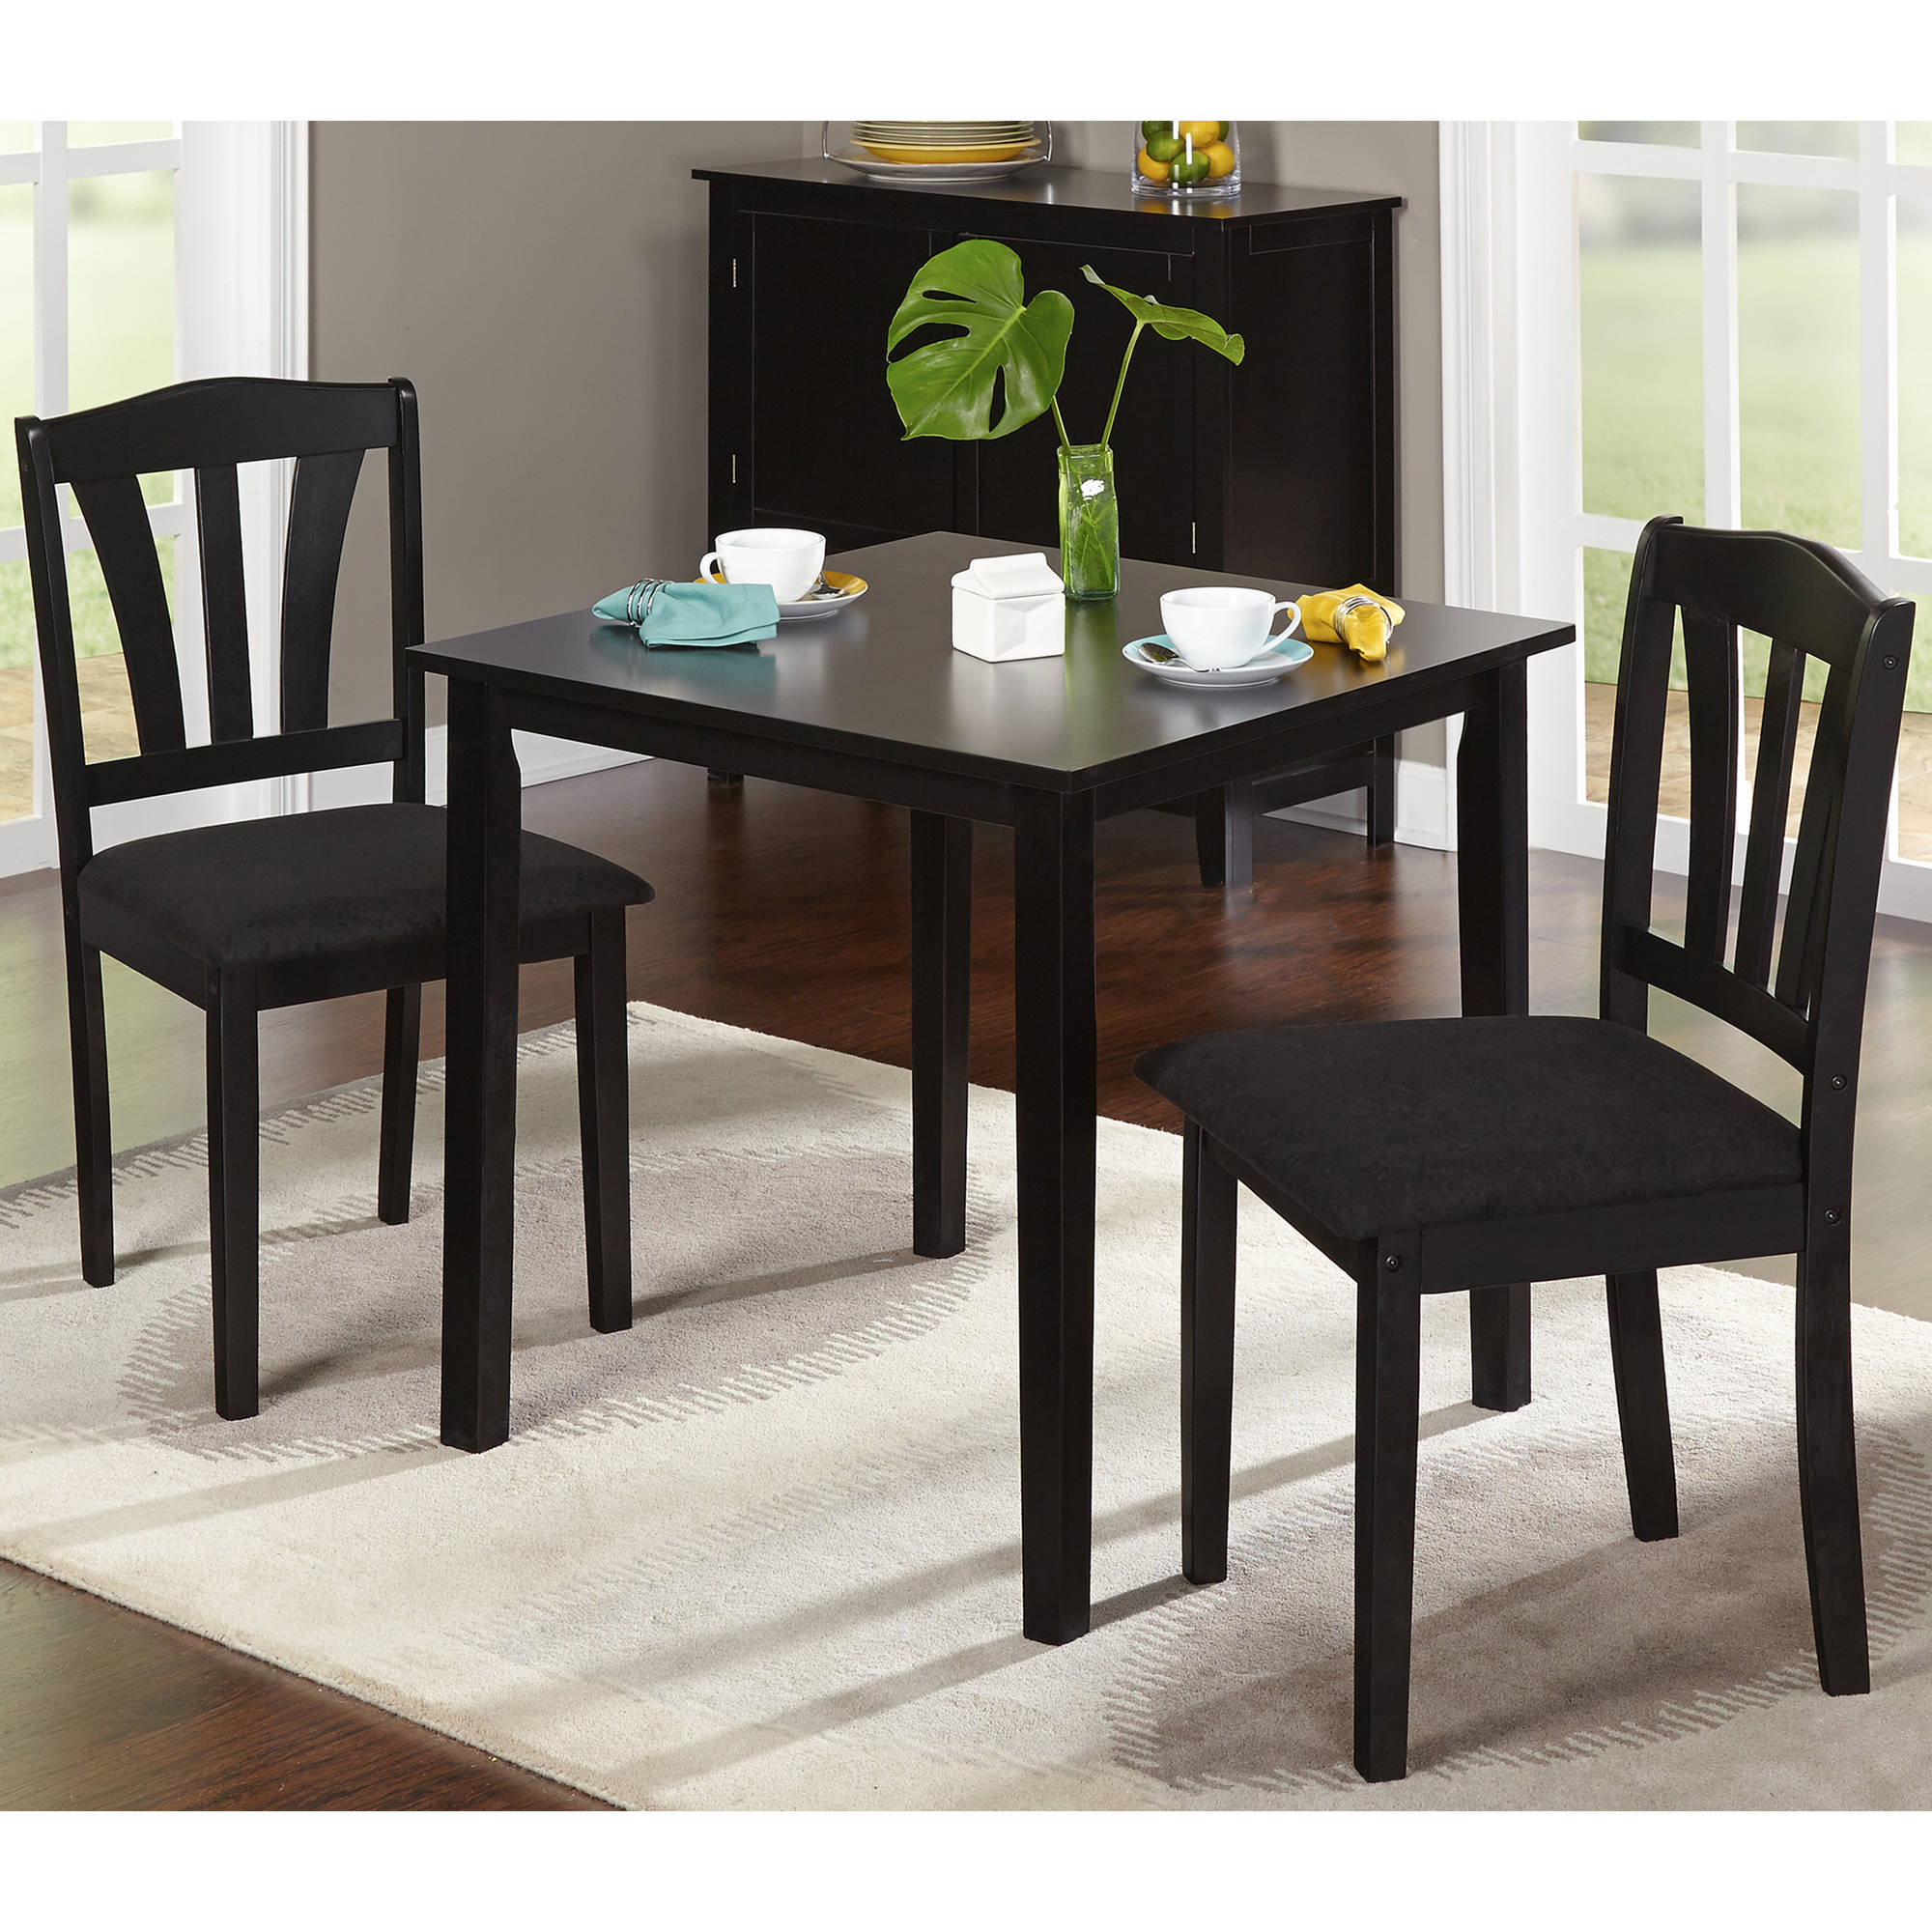 Metropolitan 3 Piece Dining Set Multiple Finishes